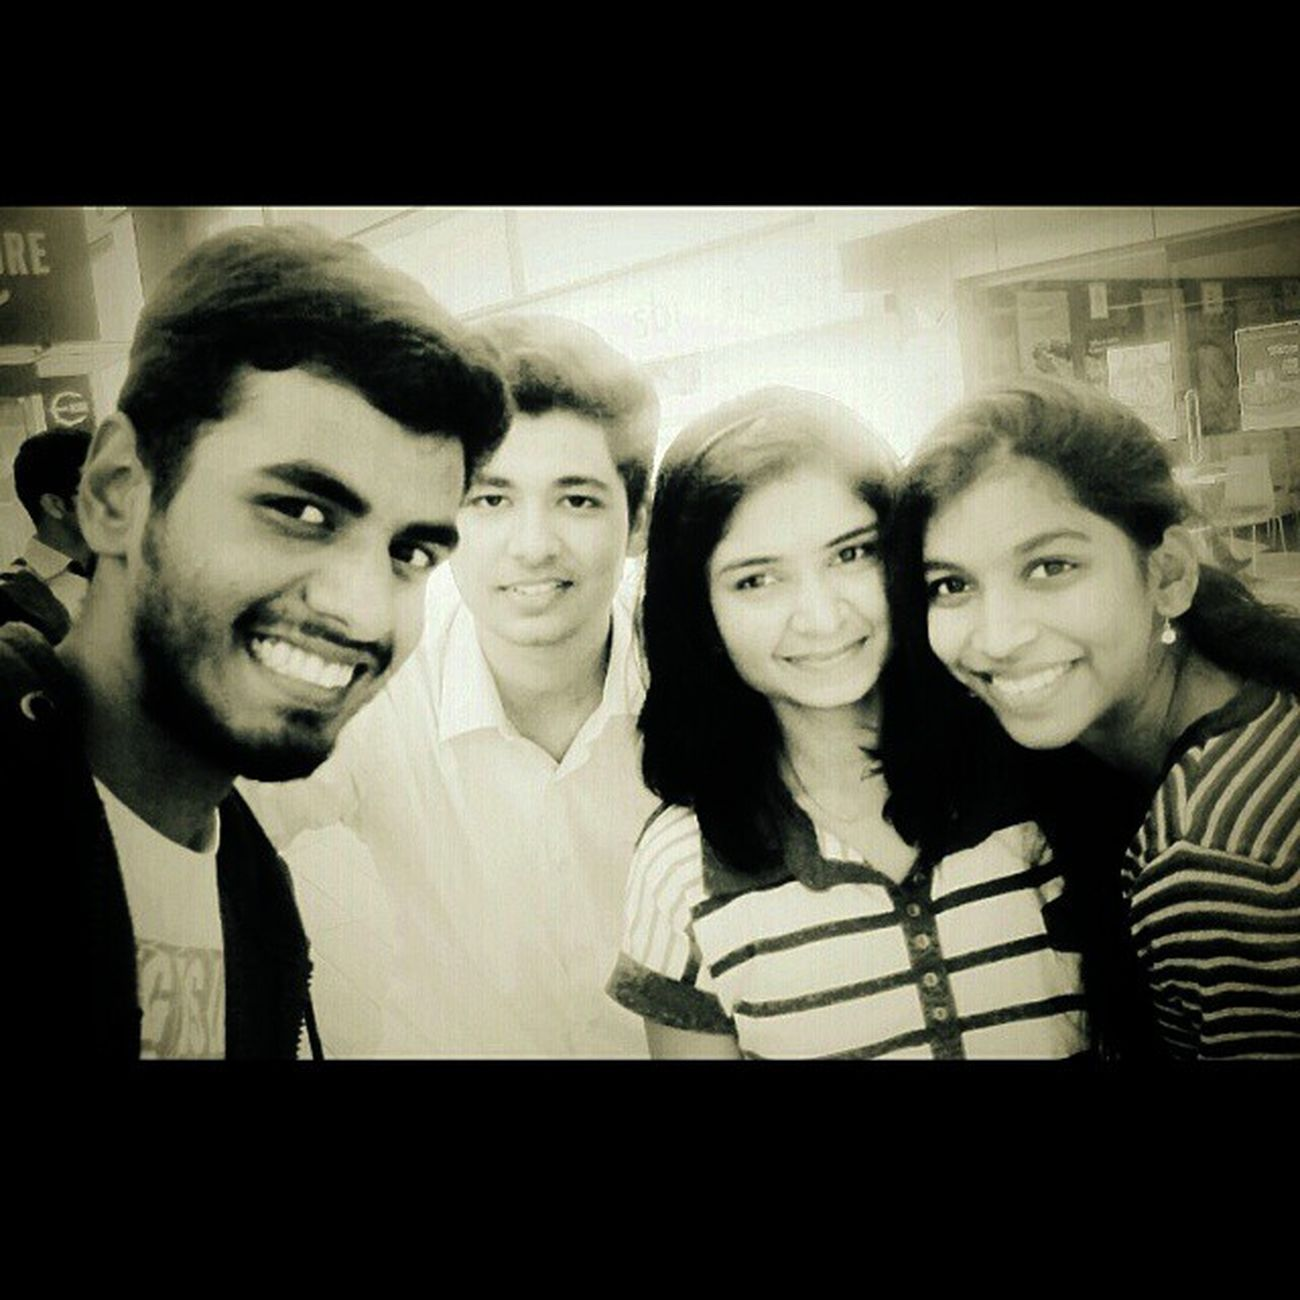 Look Whoz Bak In Town 😇 Reunion  😎 Afteralongtime Jalwe 😂 Tgb 😋